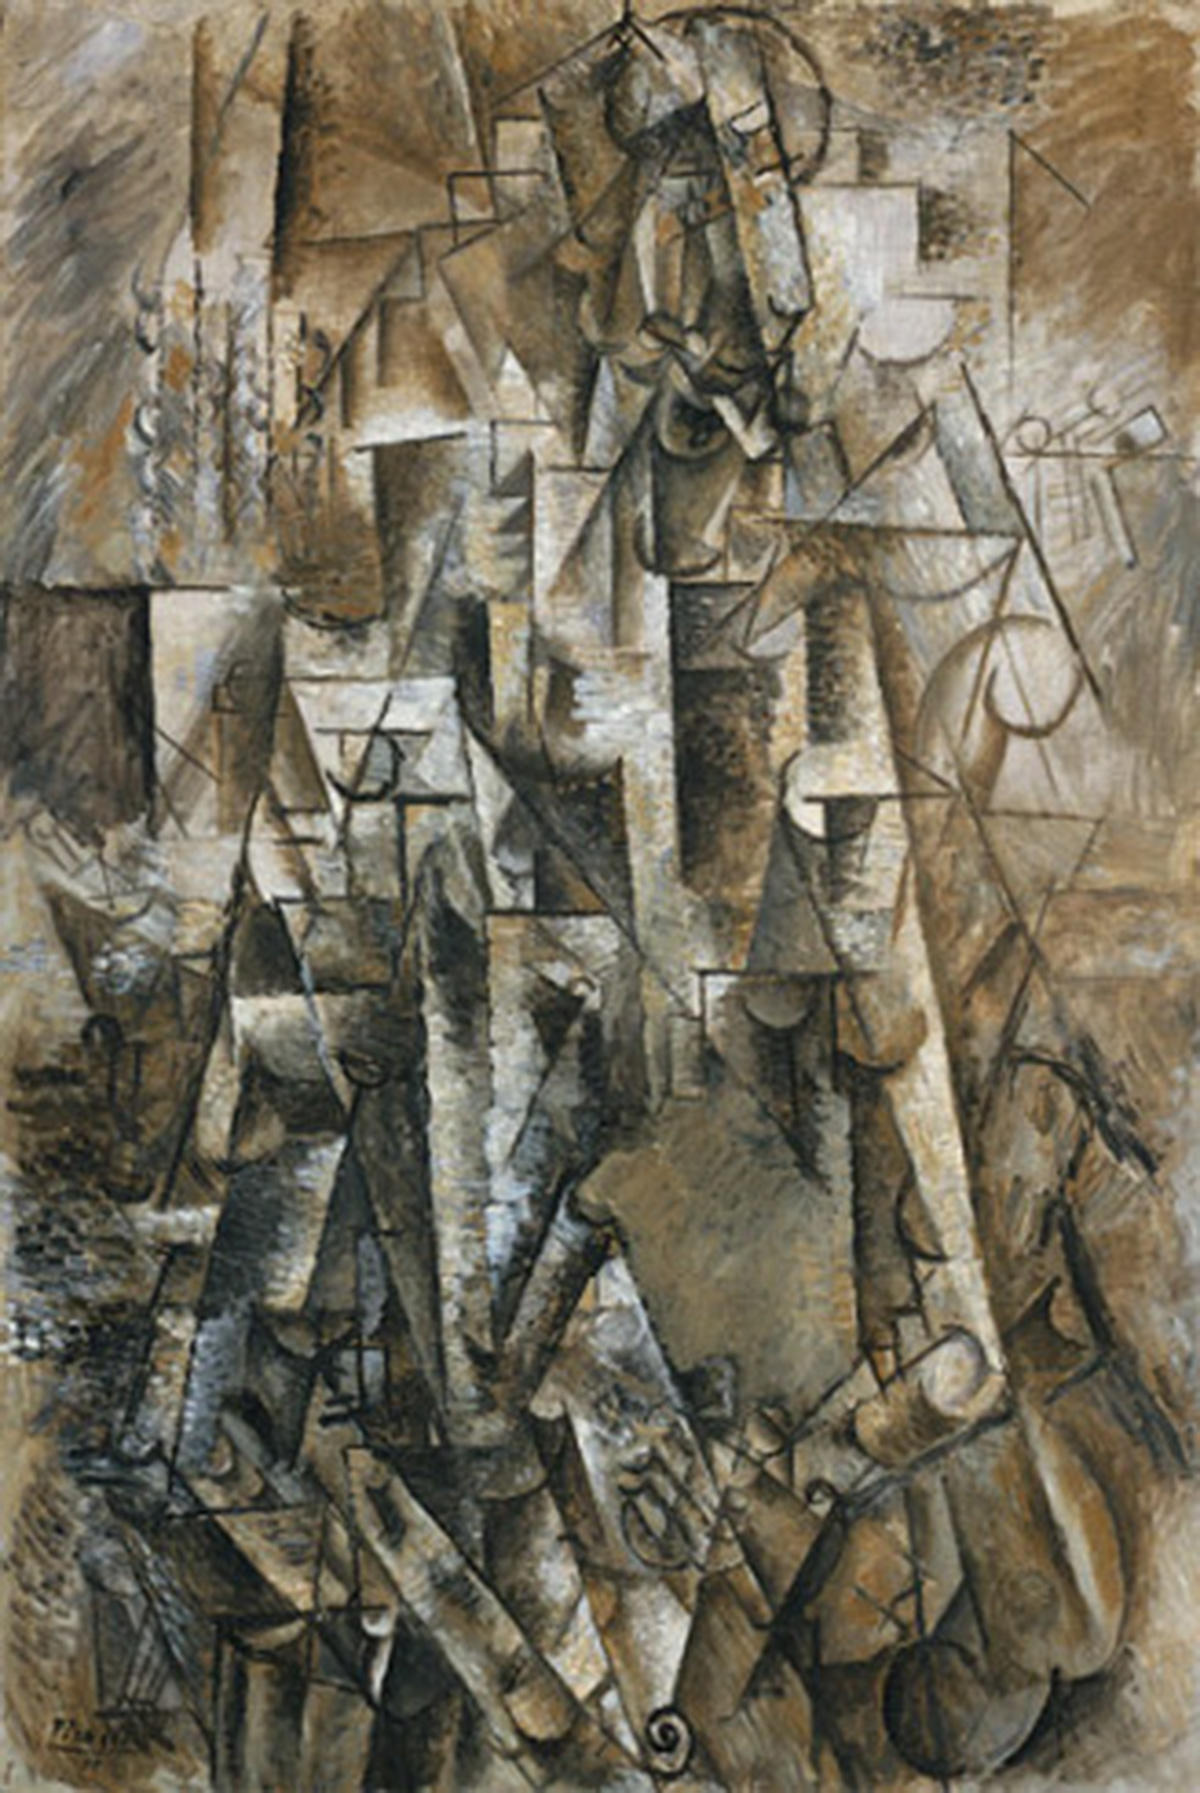 Pablo_Picasso,_1911,_The_Poet_(Le_poète),_Céret,_oil_on_linen,_131.2_×_89.5_cm,_The_Solomon_R._Guggenheim_Foundation,_Peggy_Guggenheim_Collection,_Venice